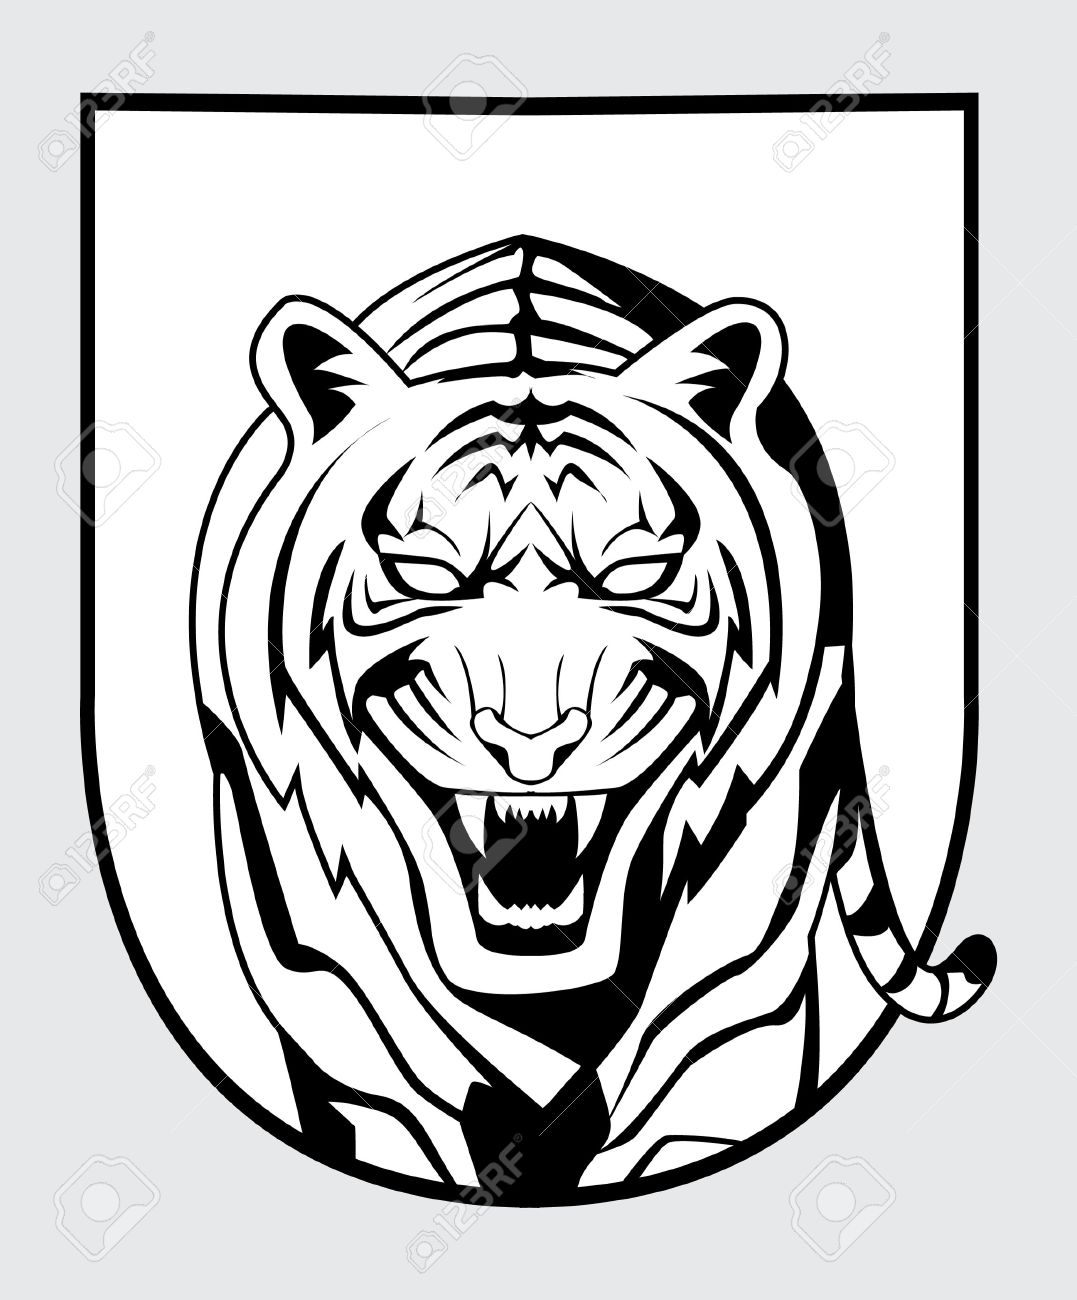 Tiger Symbol Royalty Free Cliparts Vectors And Stock Illustration